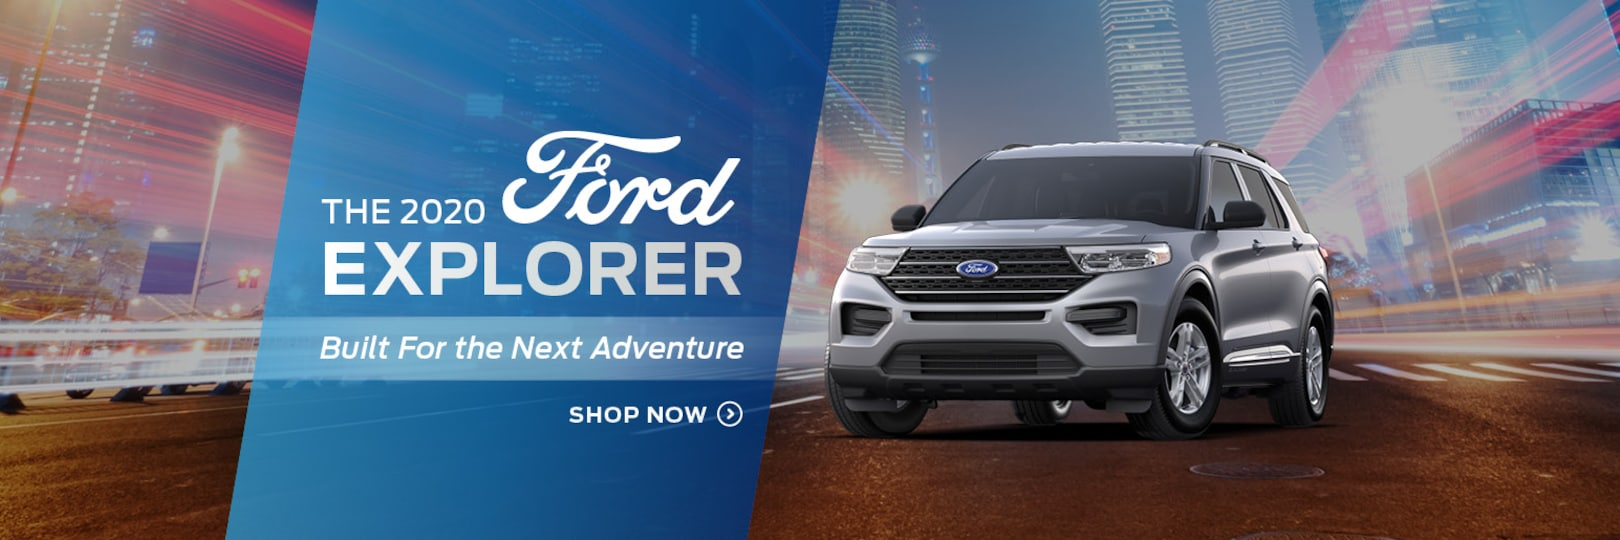 Ford Dealership Peoria Il >> New Ford And Used Car Dealer Serving El Paso Heller Ford